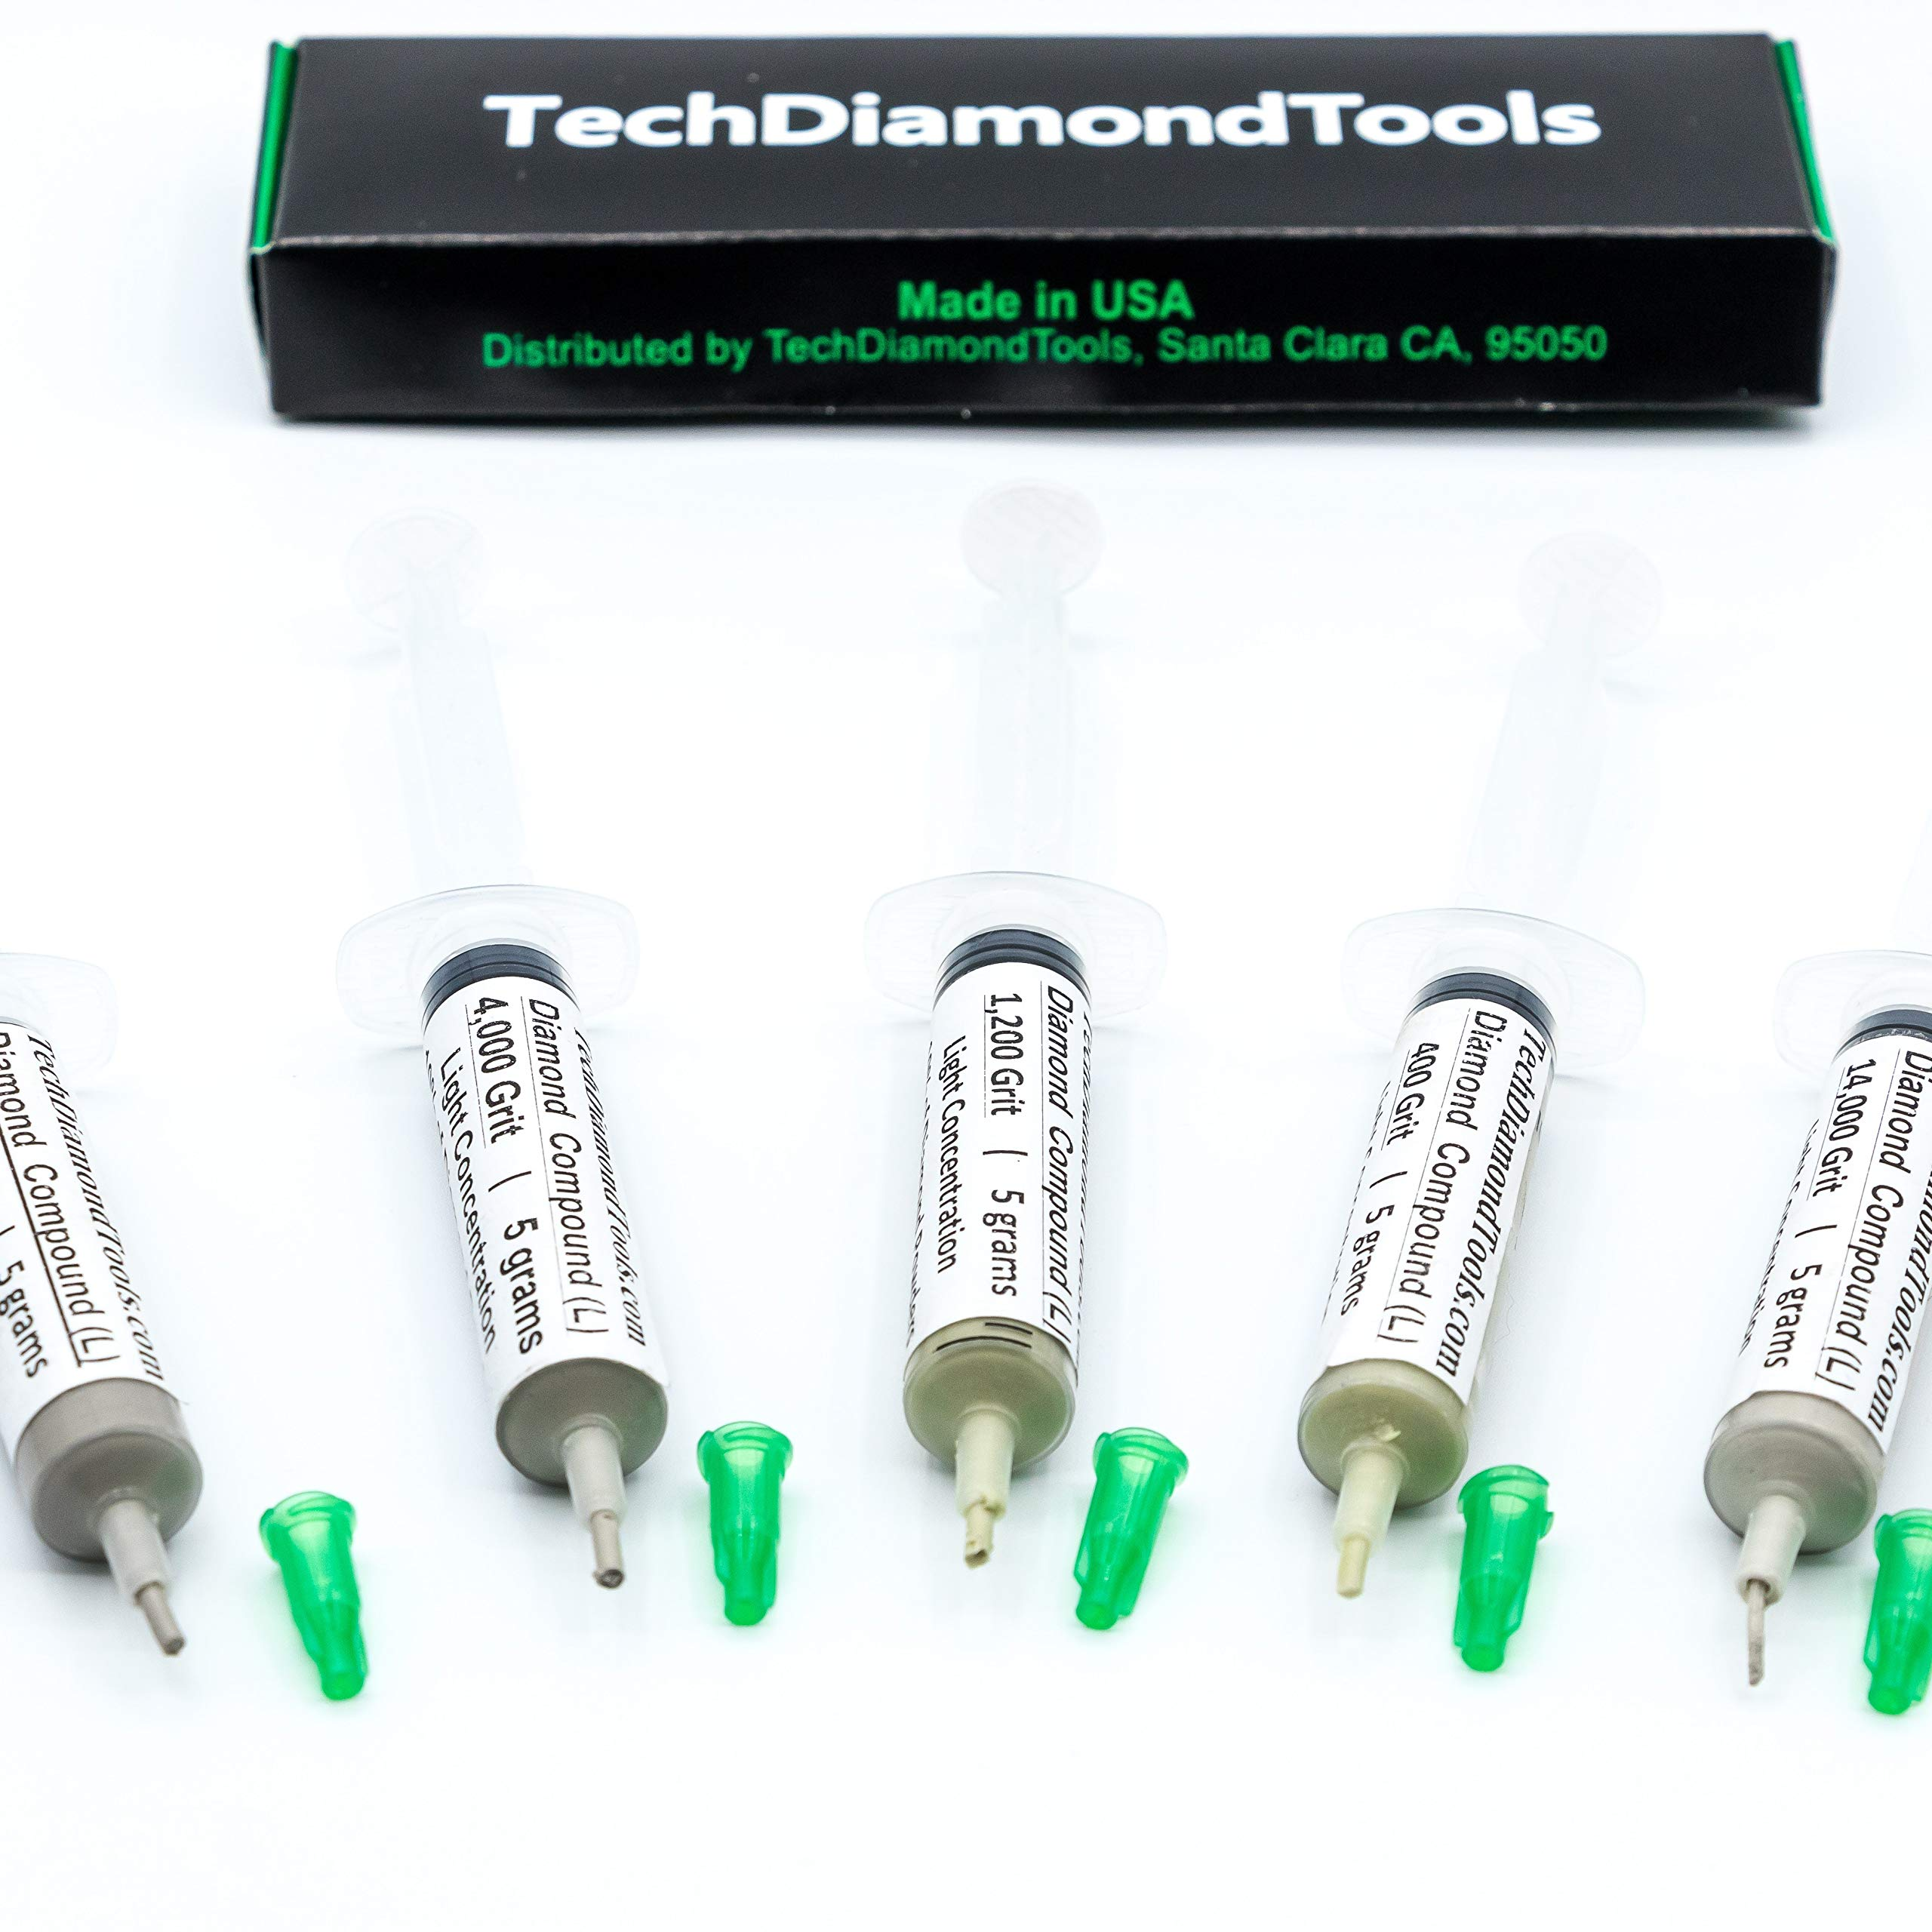 TechDiamondTools Diamond Lapidary Paste Set of 5 Syringes X 5 Grams (L), Polishing Lapping Compound, Sizes 400 1200 4000 14000 50000 Grit, Mesh - With Light(10%) Concentration of Diamond Powders